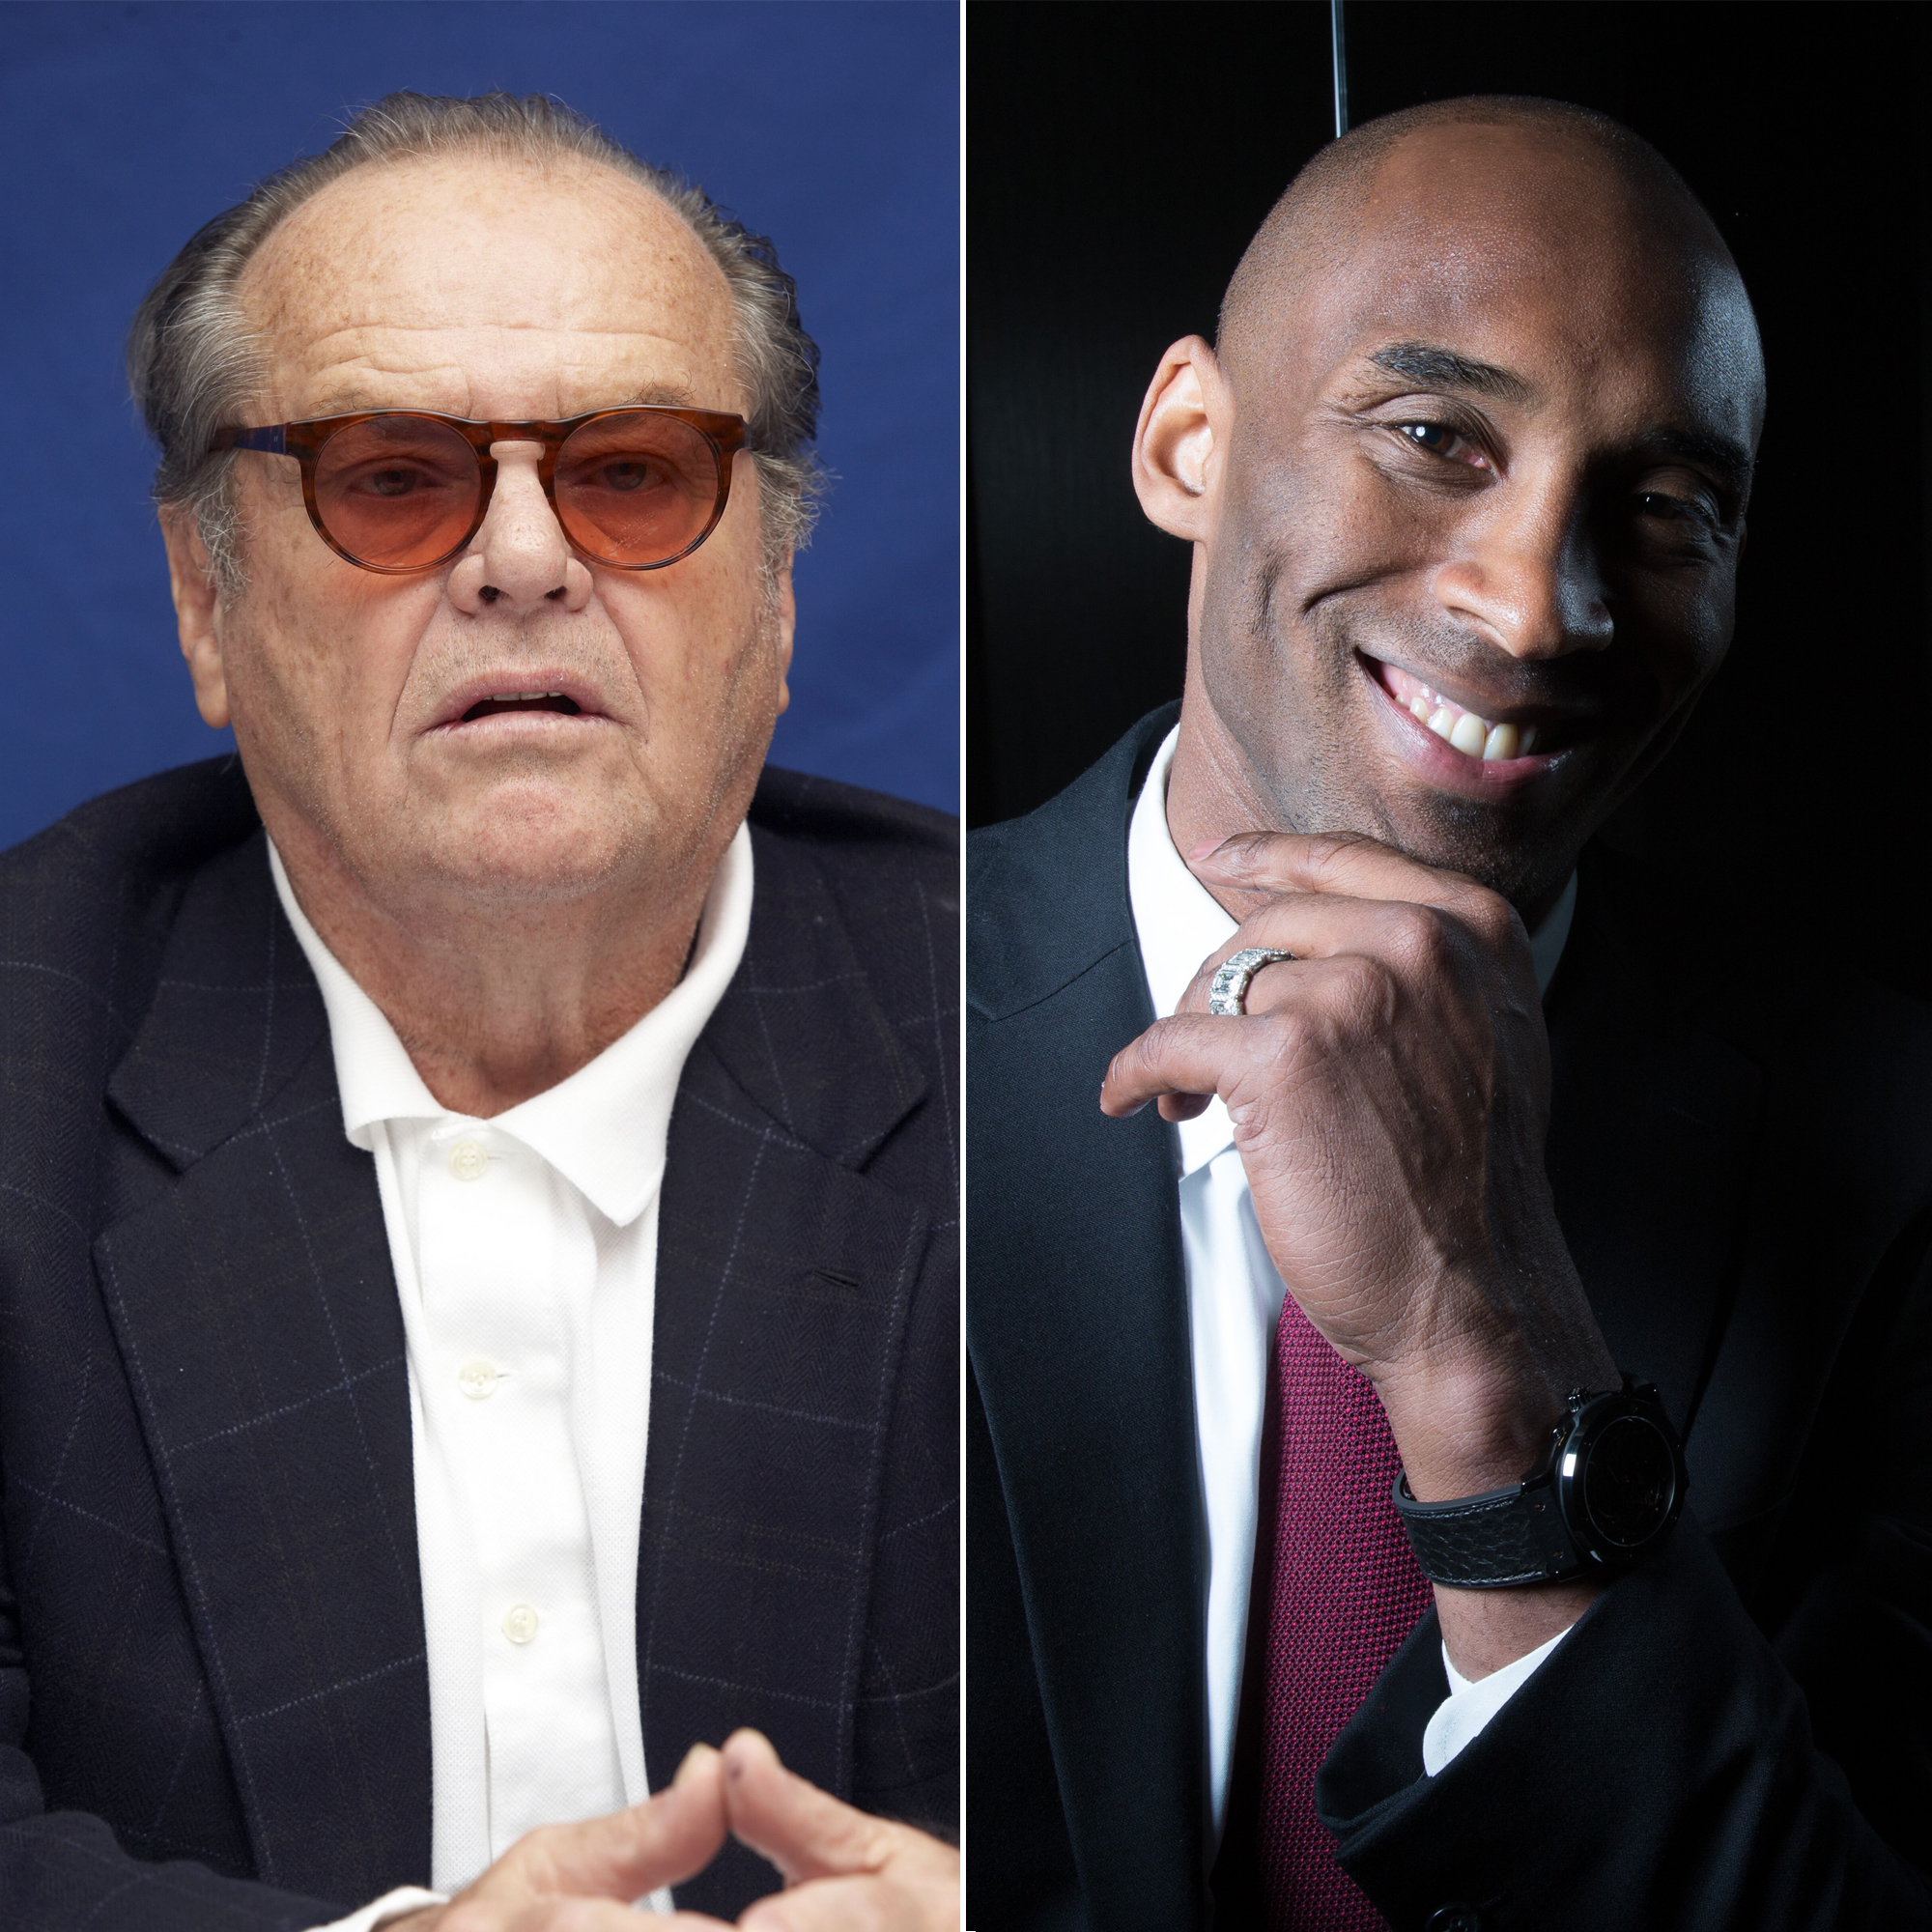 Jack Nicholson Mourns Friend Kobe Bryant's Death in Rare Interview: 'It's Just a Terrible Event'